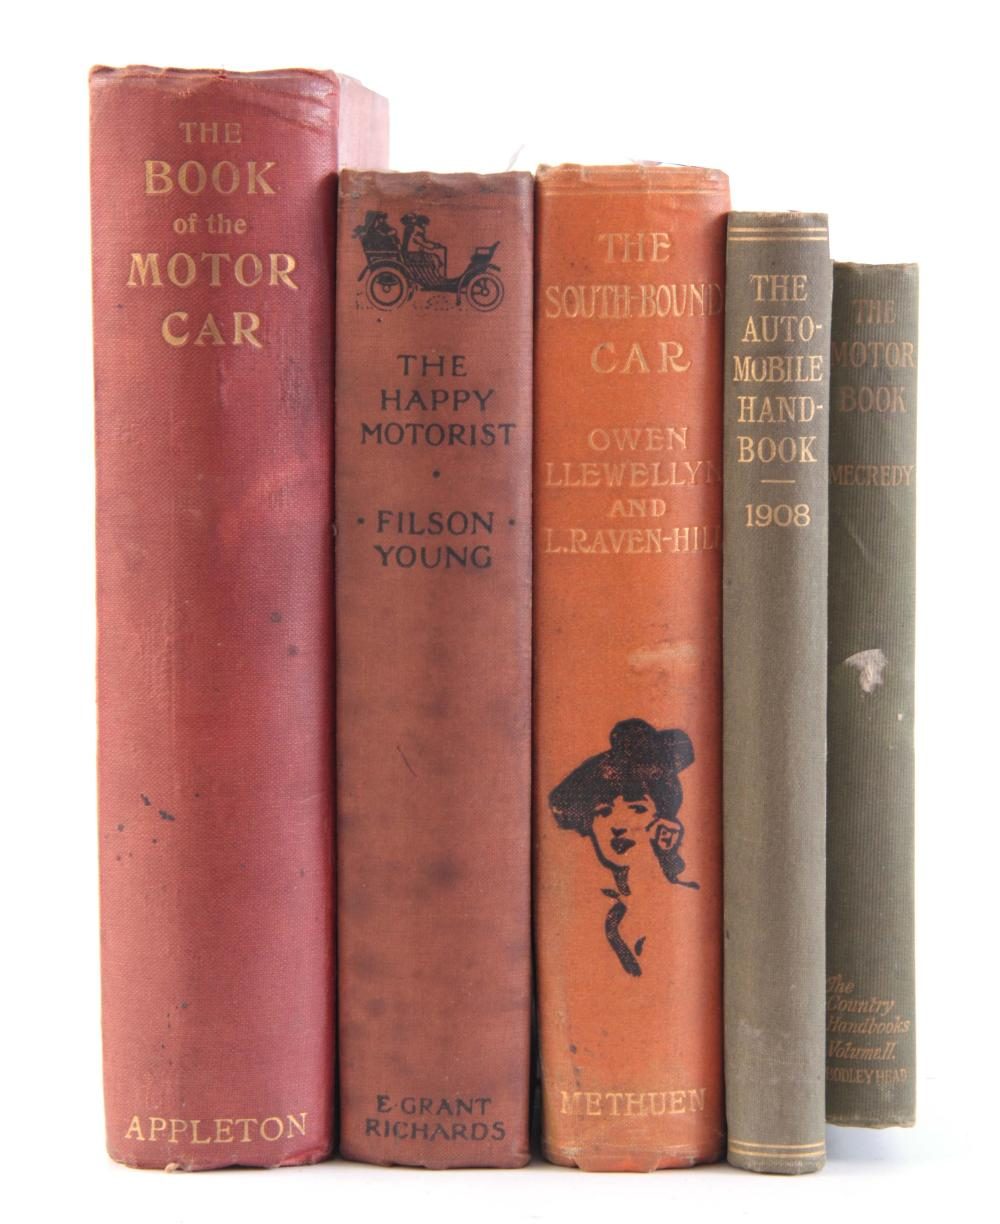 A SET OF 5 BOOKS including, THE BOOK OF THE MOTOR